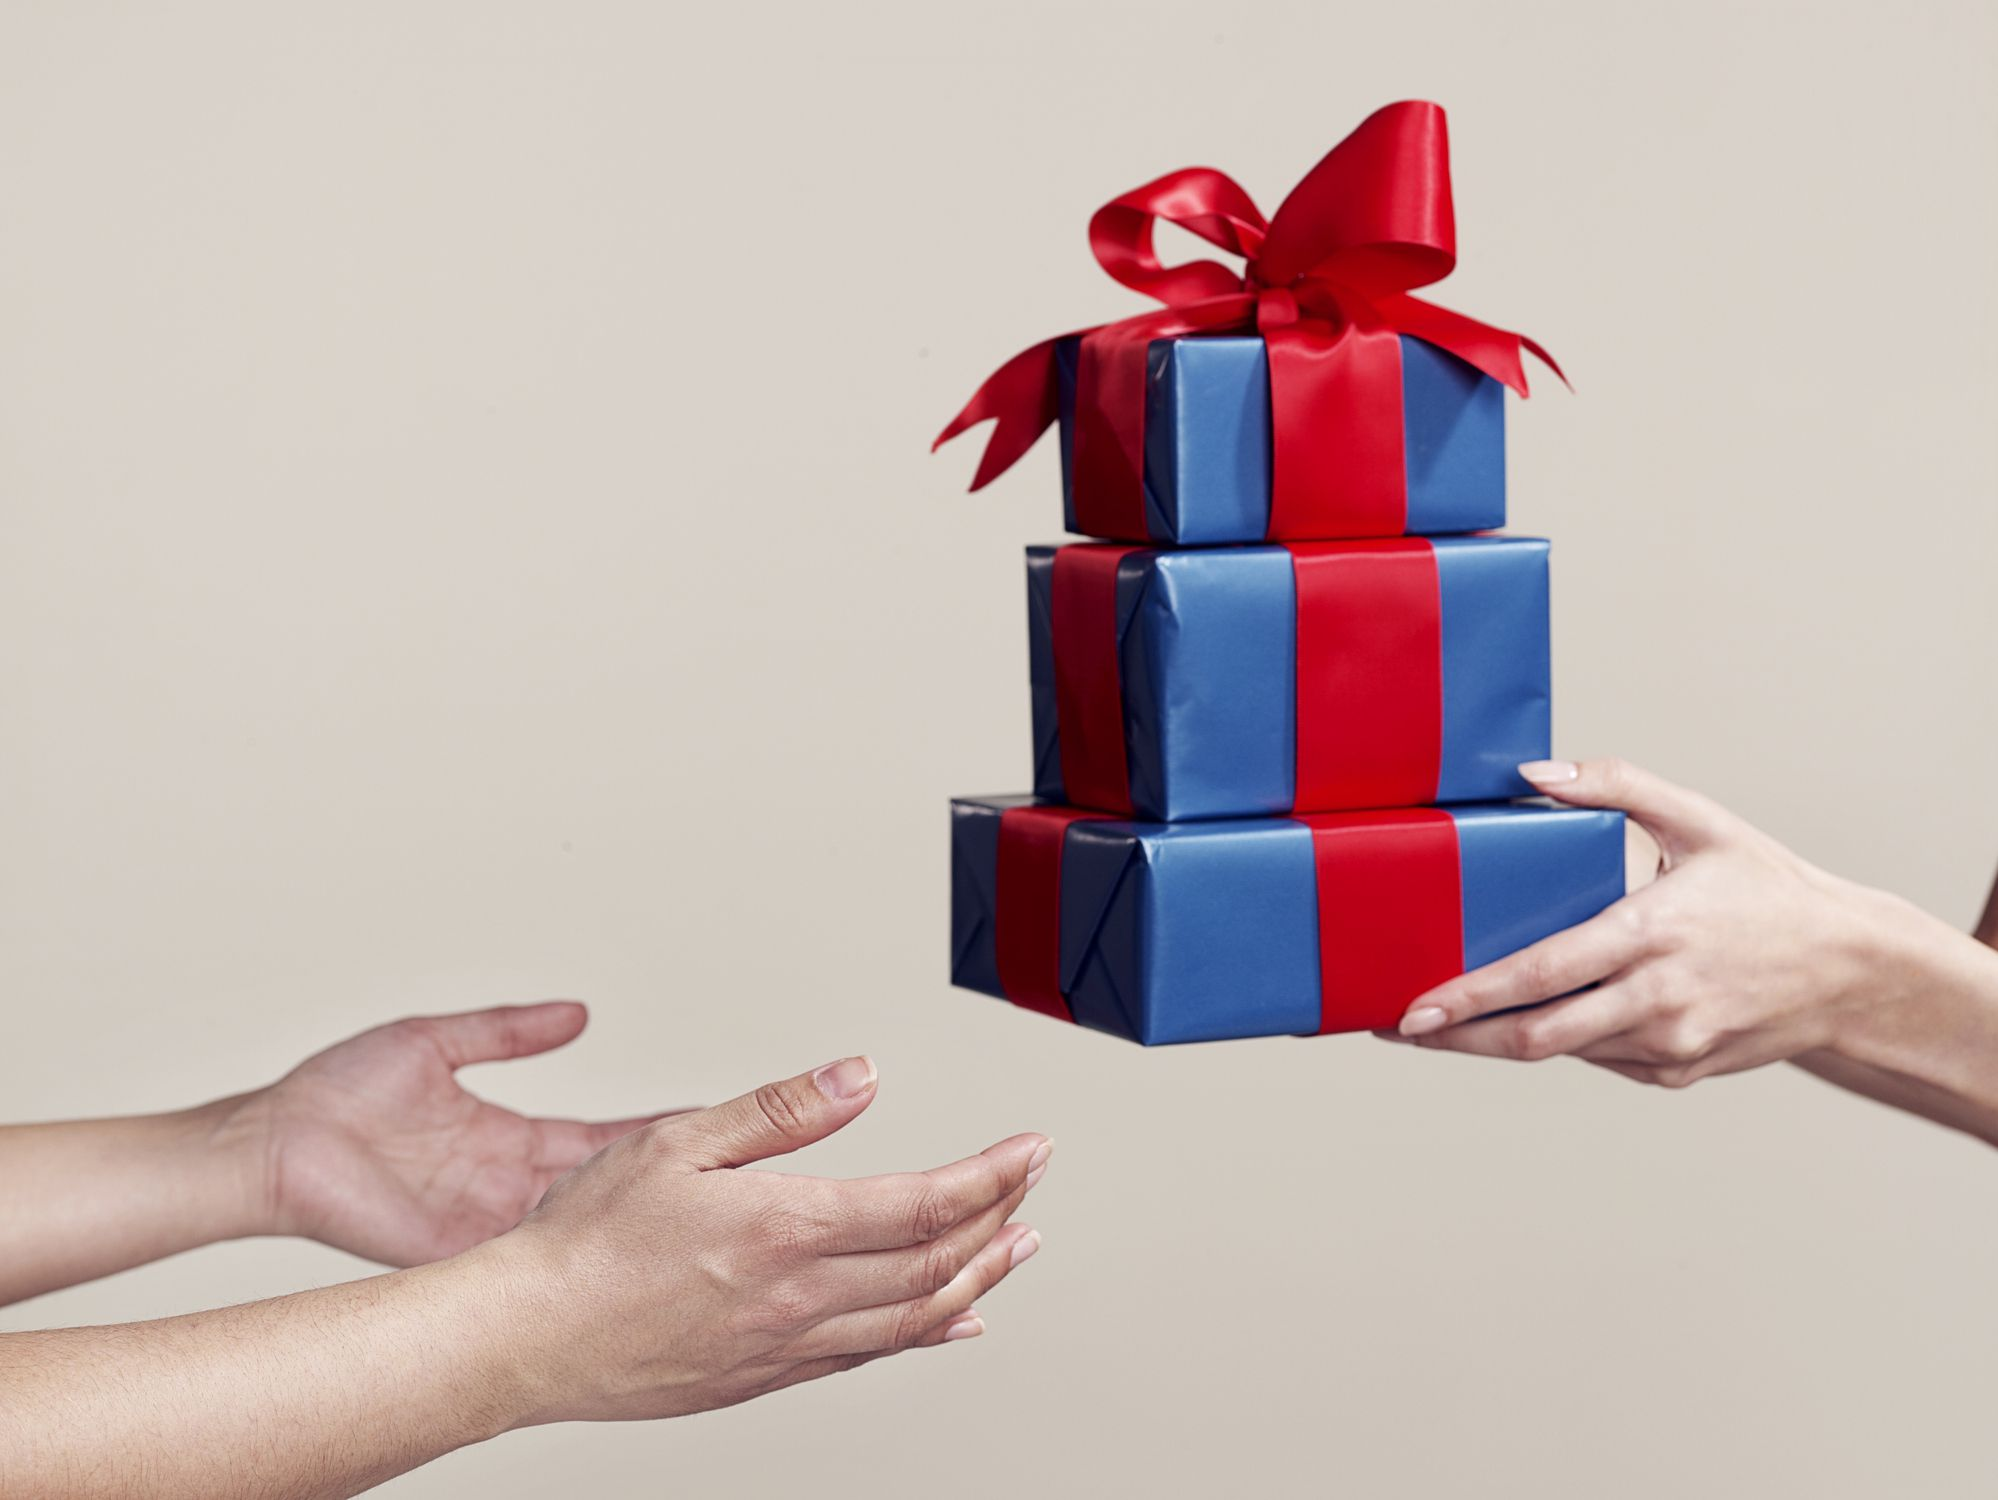 One person handing over a stack of gifts to another